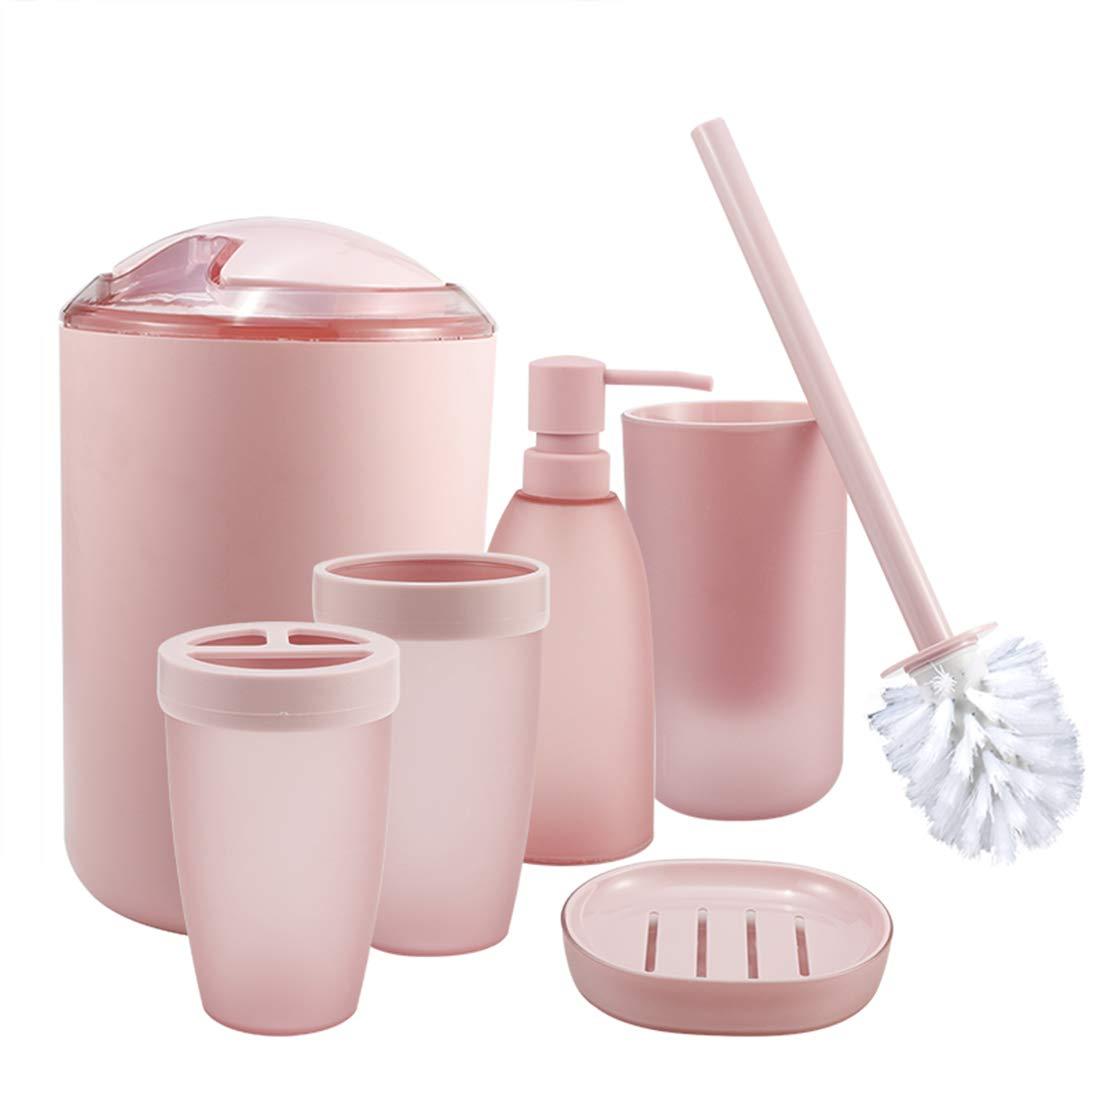 iMucci Pink 6pcs Bathroom Accessories Set - with Trash Can Toothbrush Holder Soap Dispenser Soap and Lotion Set Tumbler Cup